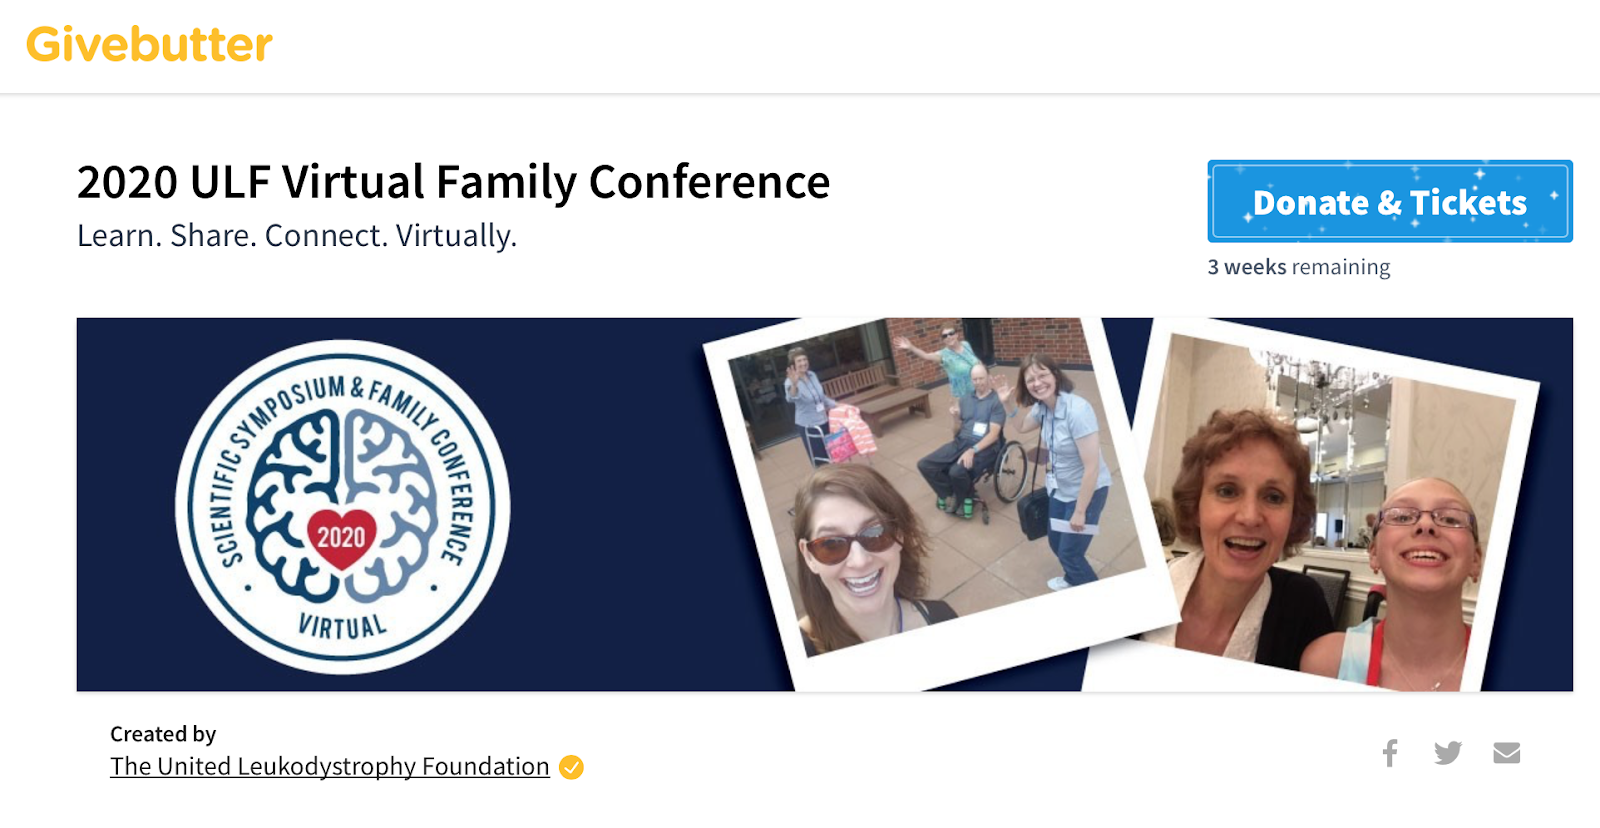 Givebutter event page for ULF Virtual Family Conferece